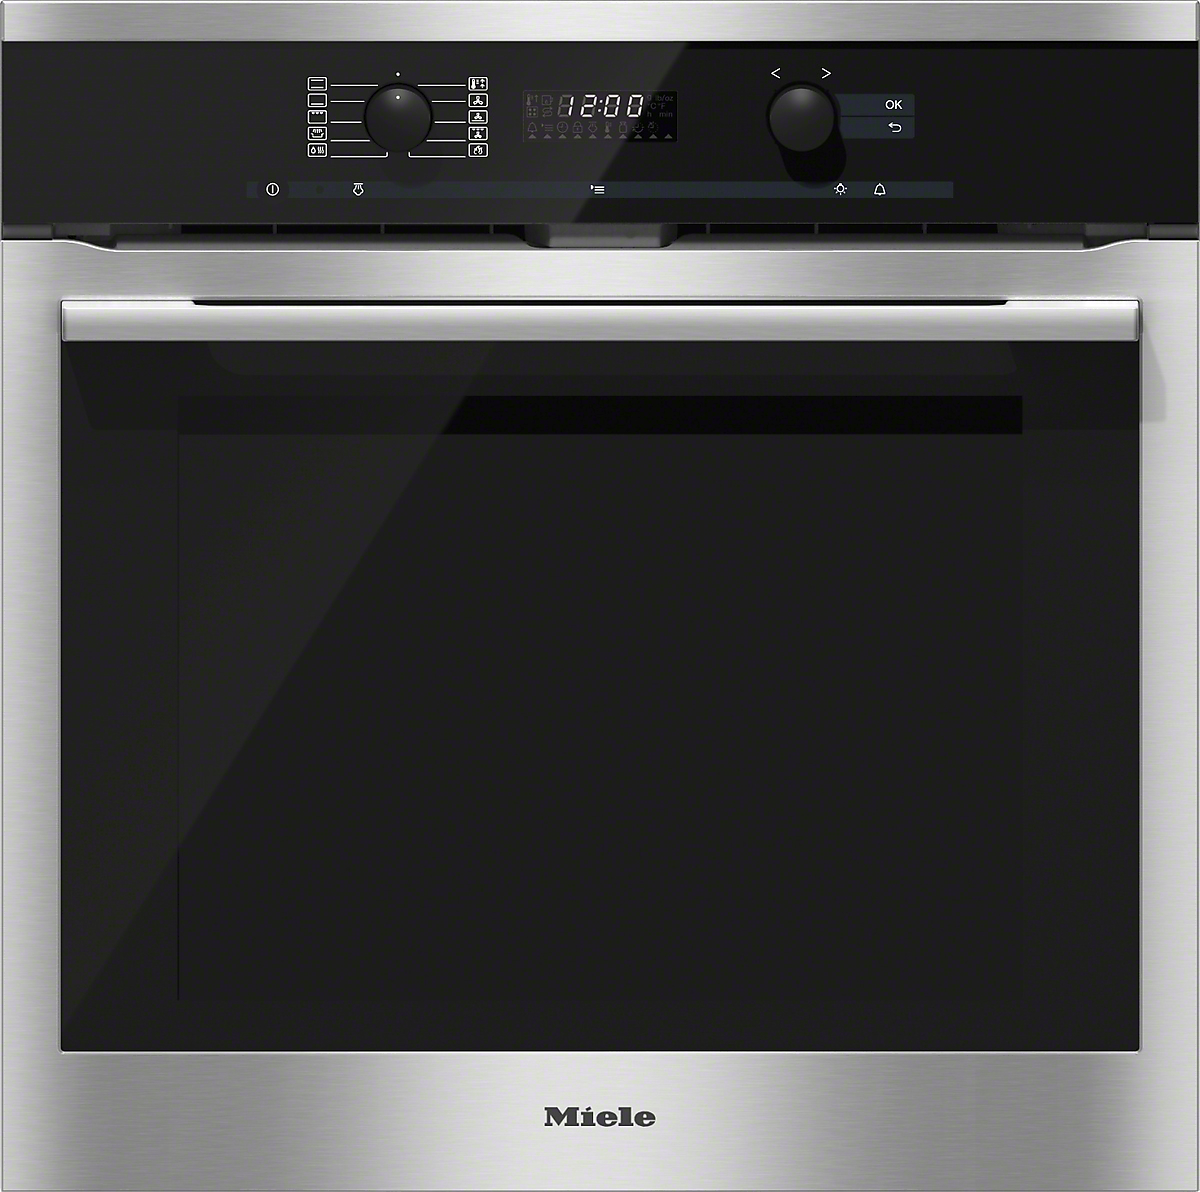 miele ovens h 6160 bp oven rh miele co uk Miele Wall Oven Microwave Combo 24 Inch Double Wall Oven